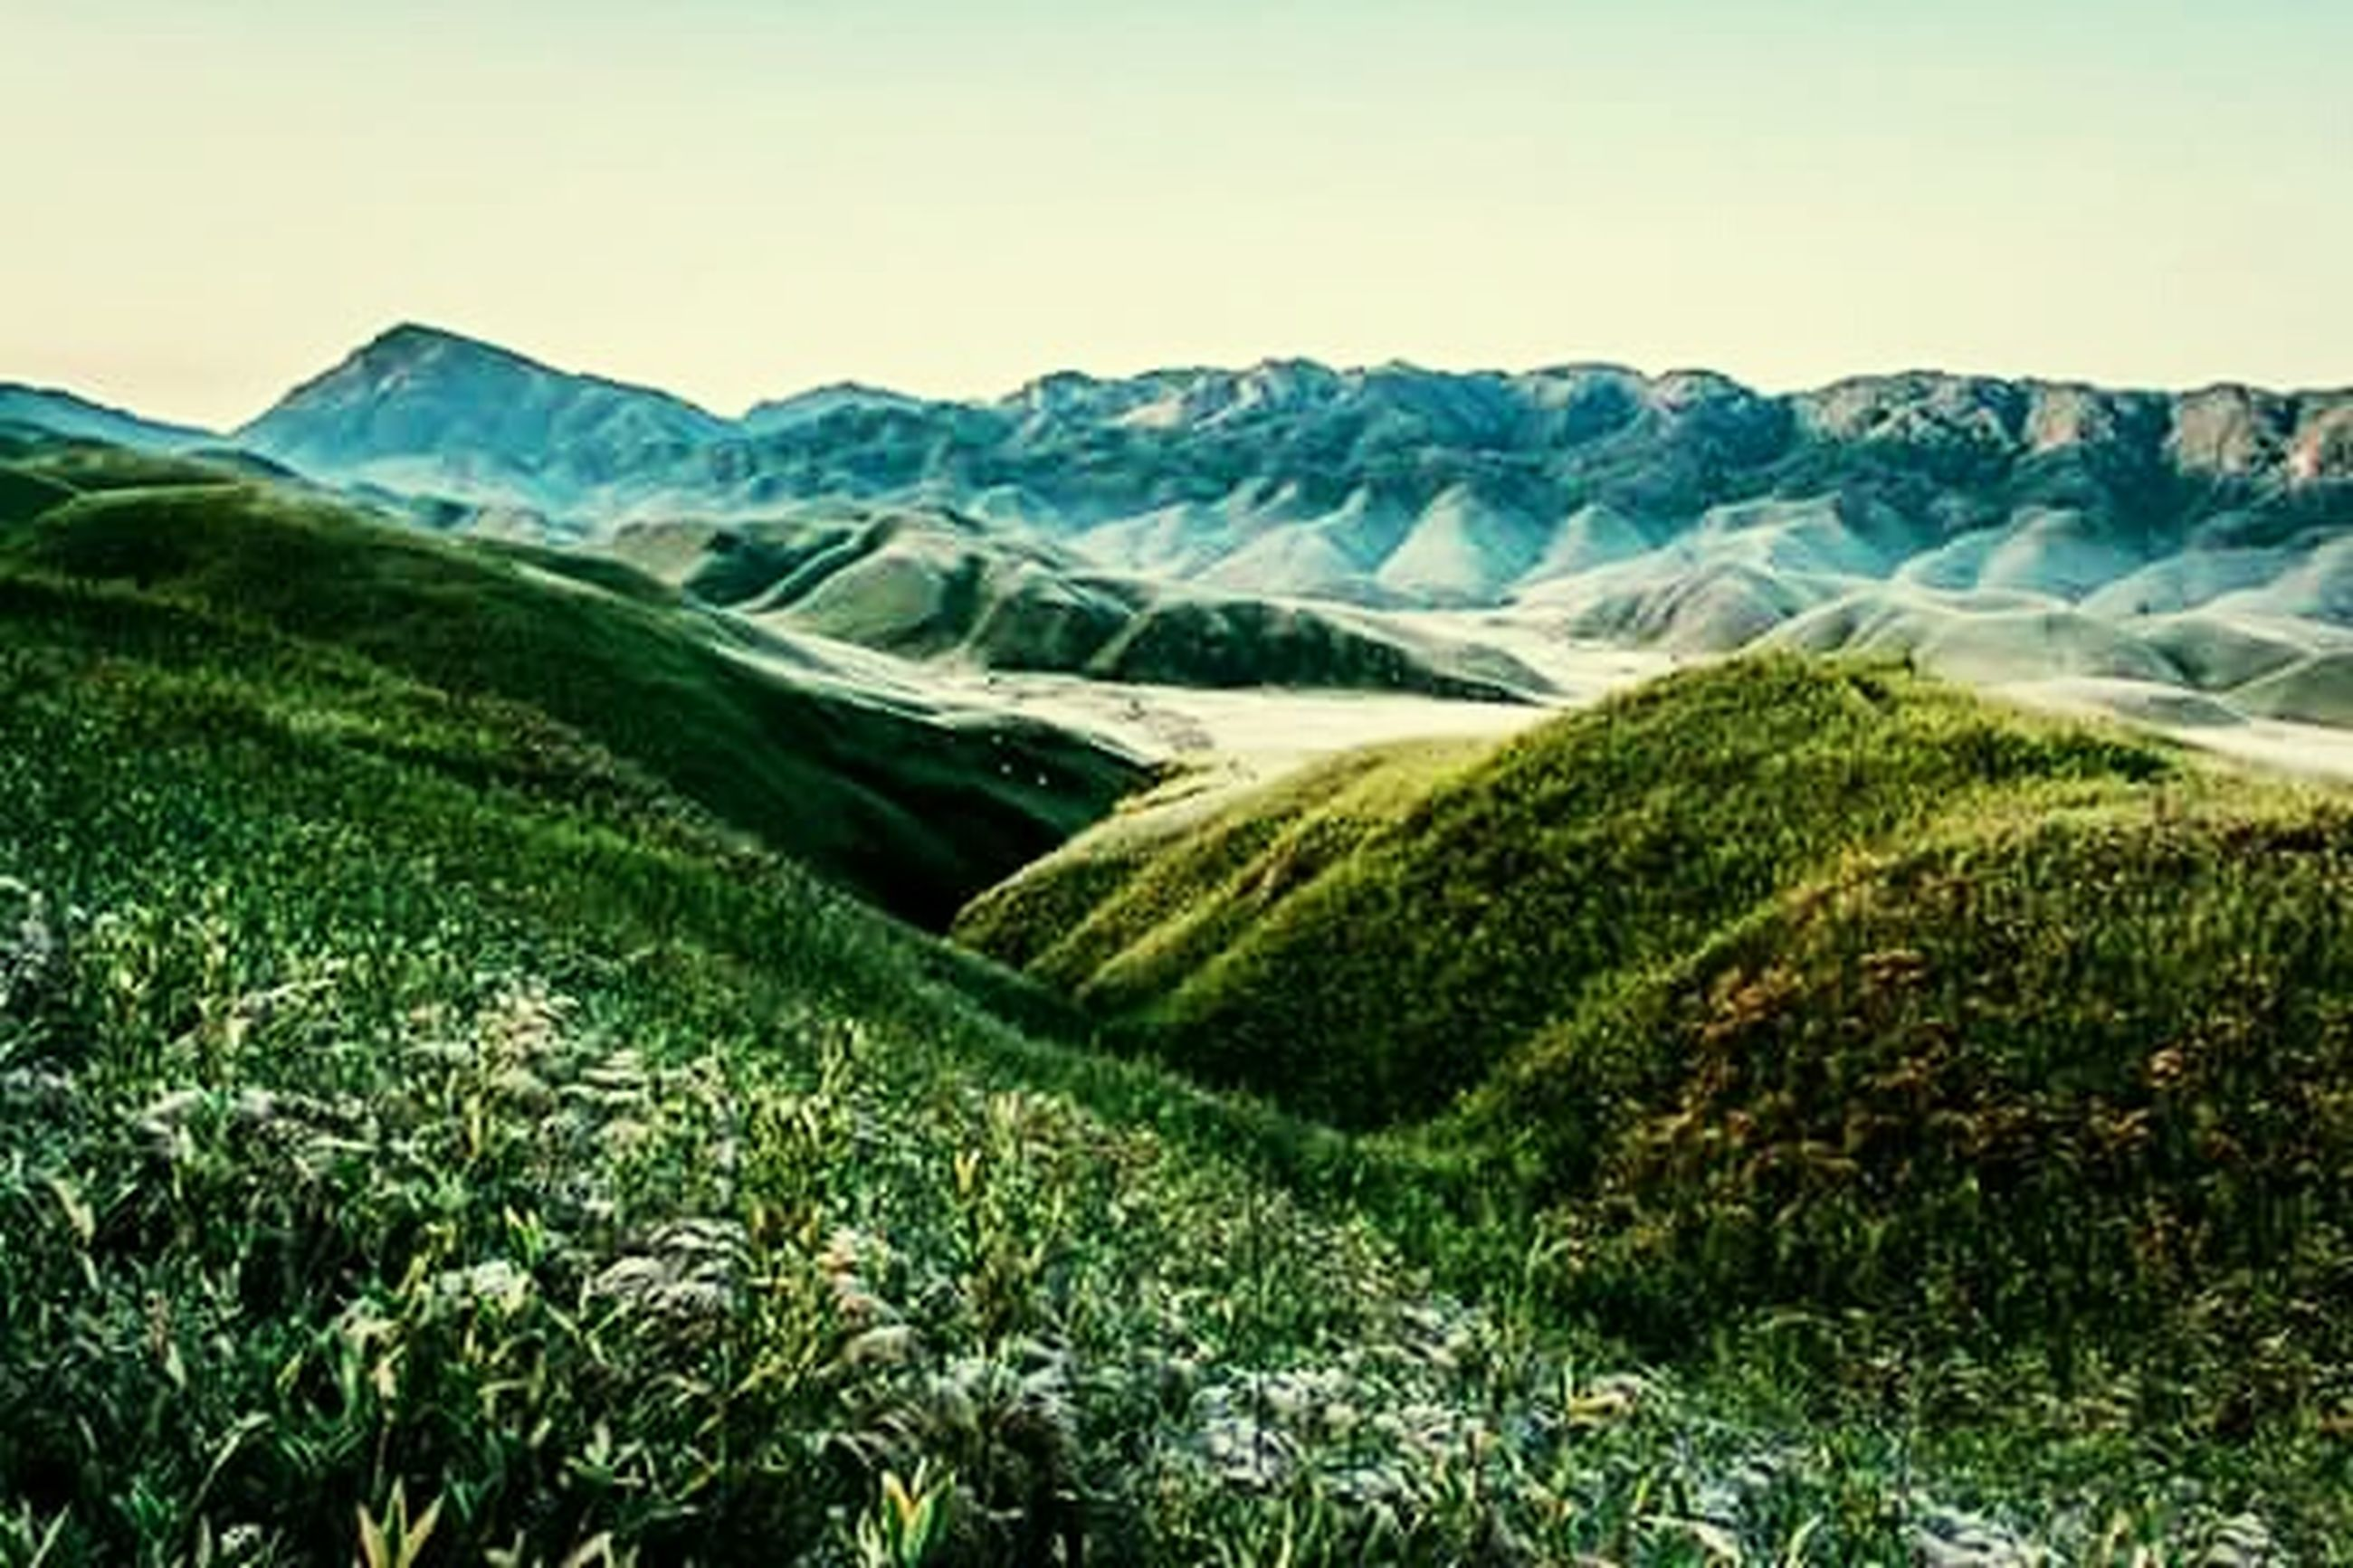 landscape, mountain, rural scene, green color, nature, scenics, landscaped, agriculture, summer, mountain range, clear sky, grass, outdoors, plant, no people, beauty in nature, day, sky, freshness